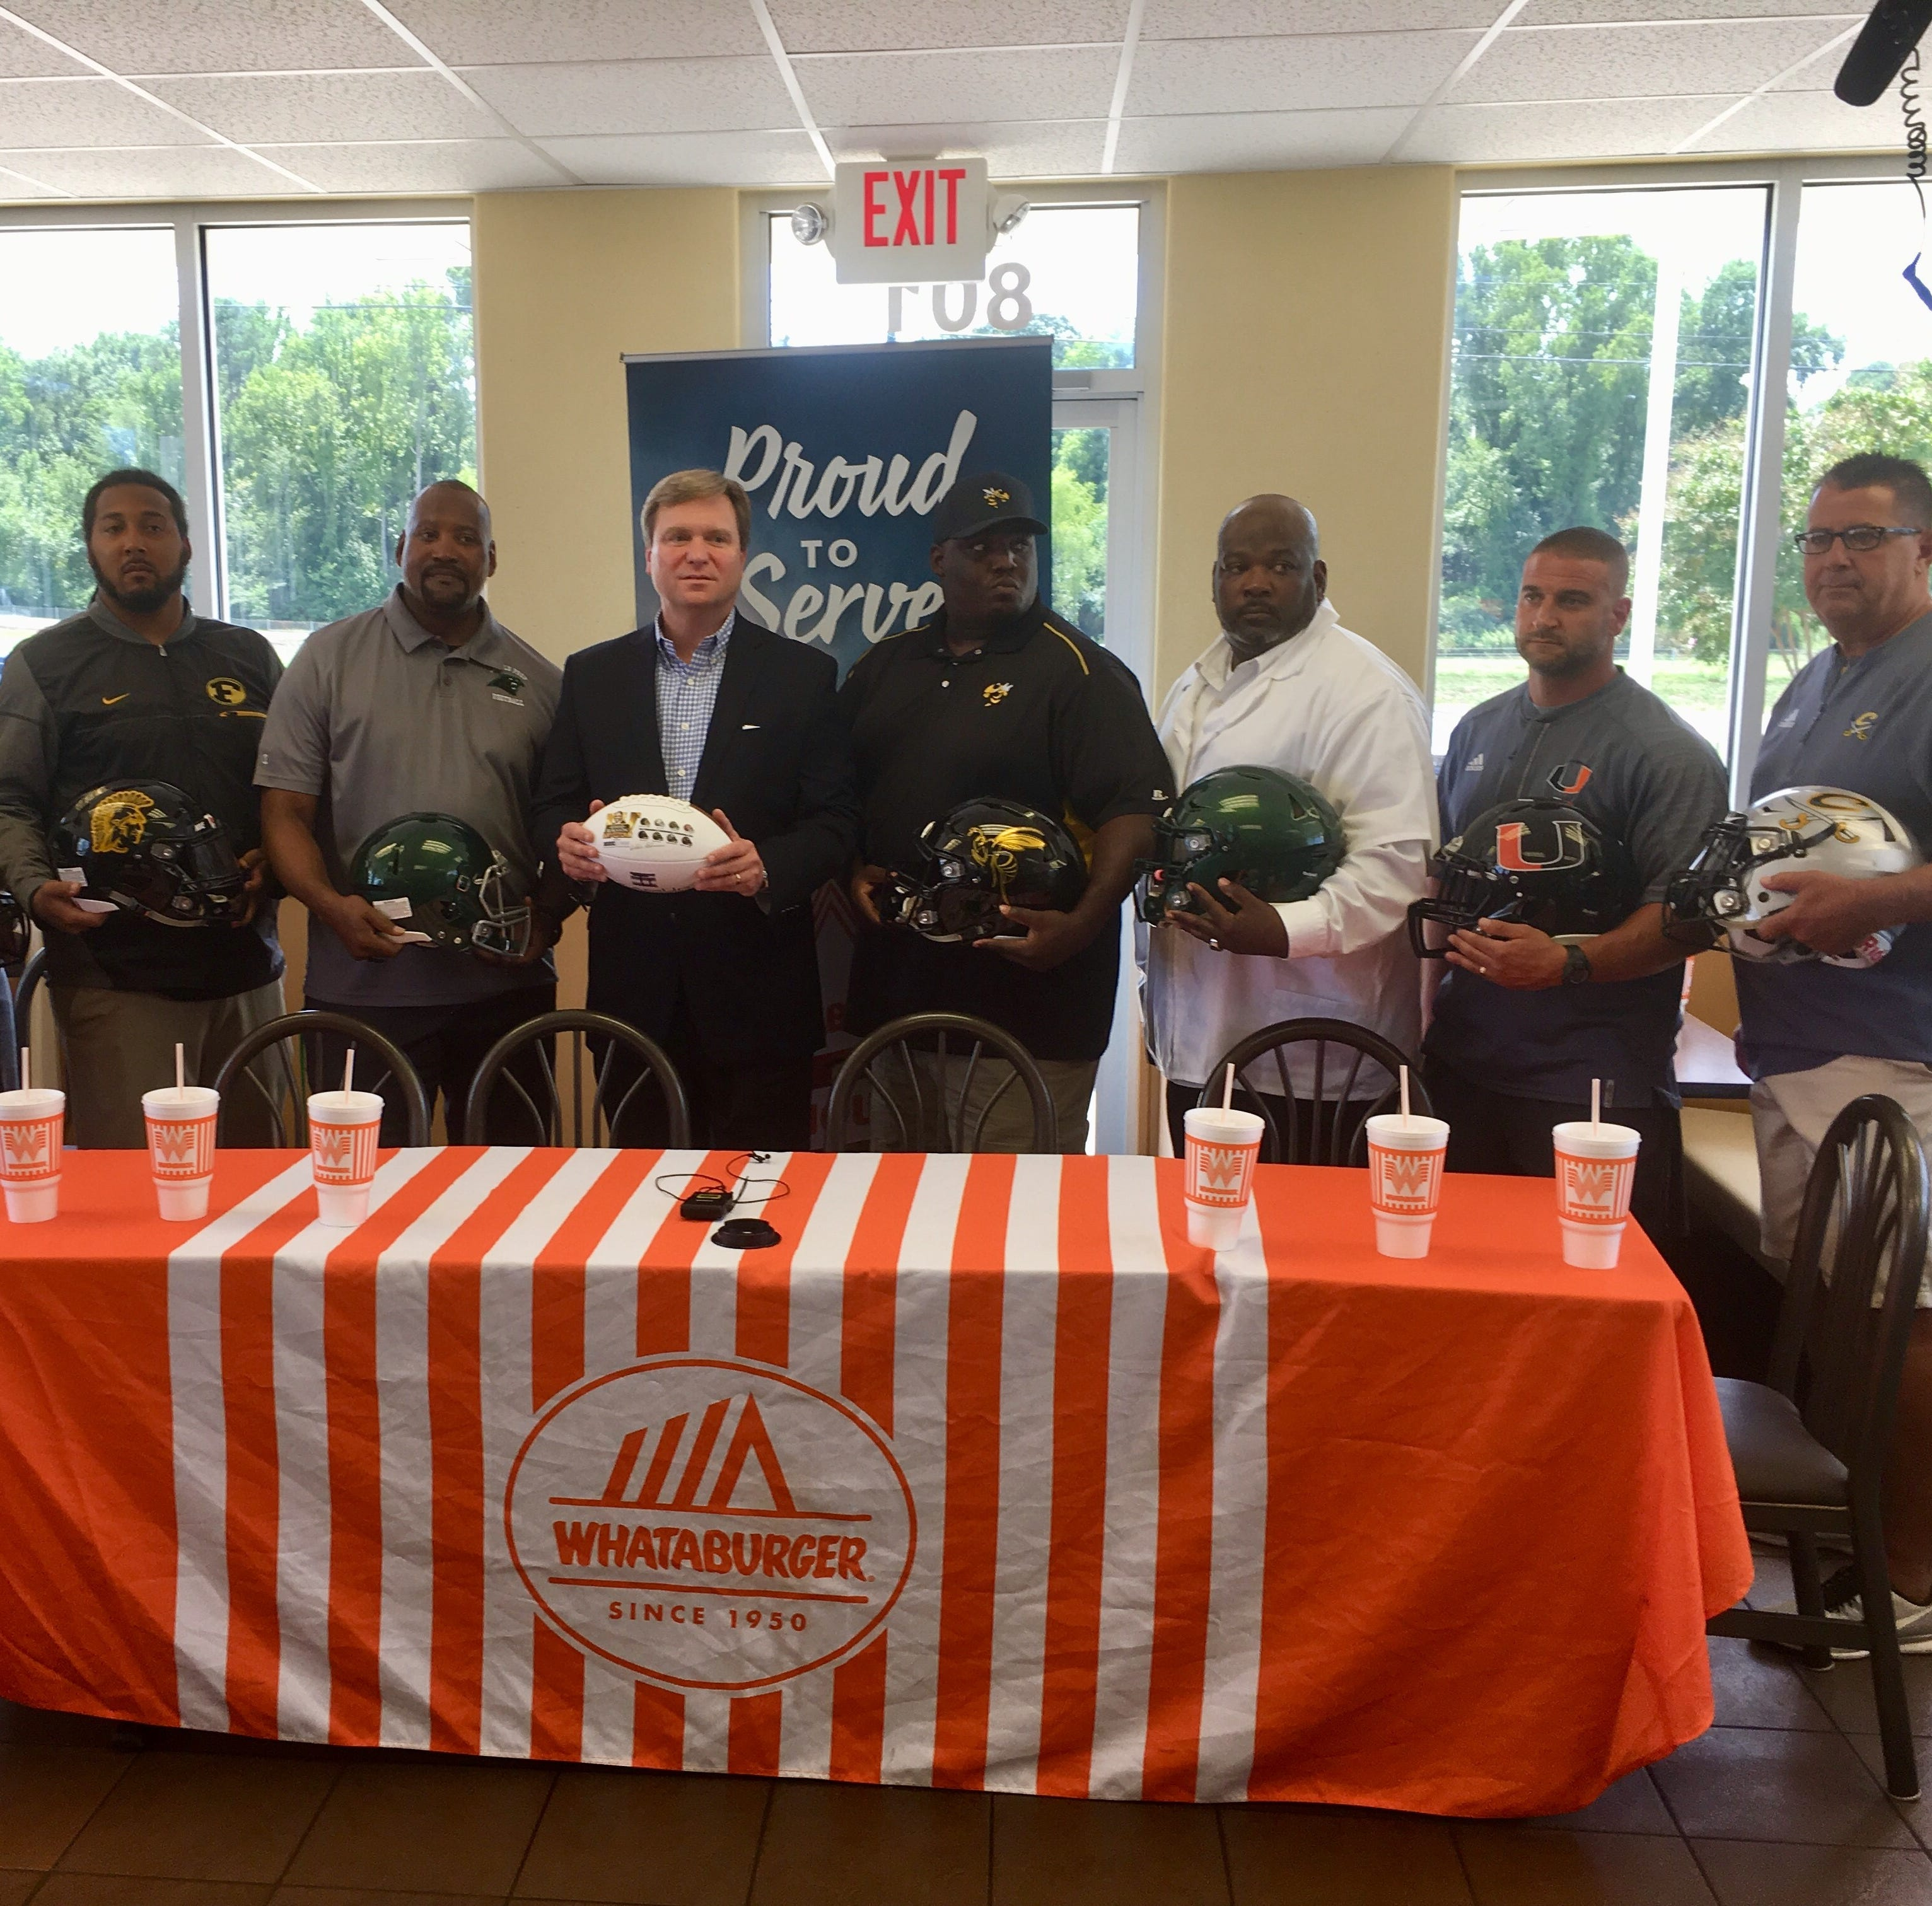 From Right to Left) Evangel Eagles' coach Byron Dawson, Northwest Raiders' coach Chris Edwards, Ferriday Trojans' Stanley Smith, Lincoln Prep Panthers' Glen Hall, Christian Creed (sponsor), Arcadia Hornets' coach Dimitri Carr, Rayville Hornets coach Lent Bursey, Union Parish Fighting Farmers' coach Joe Spatafora and Calvary Baptist Cavaliers' coach Rodney Guin.